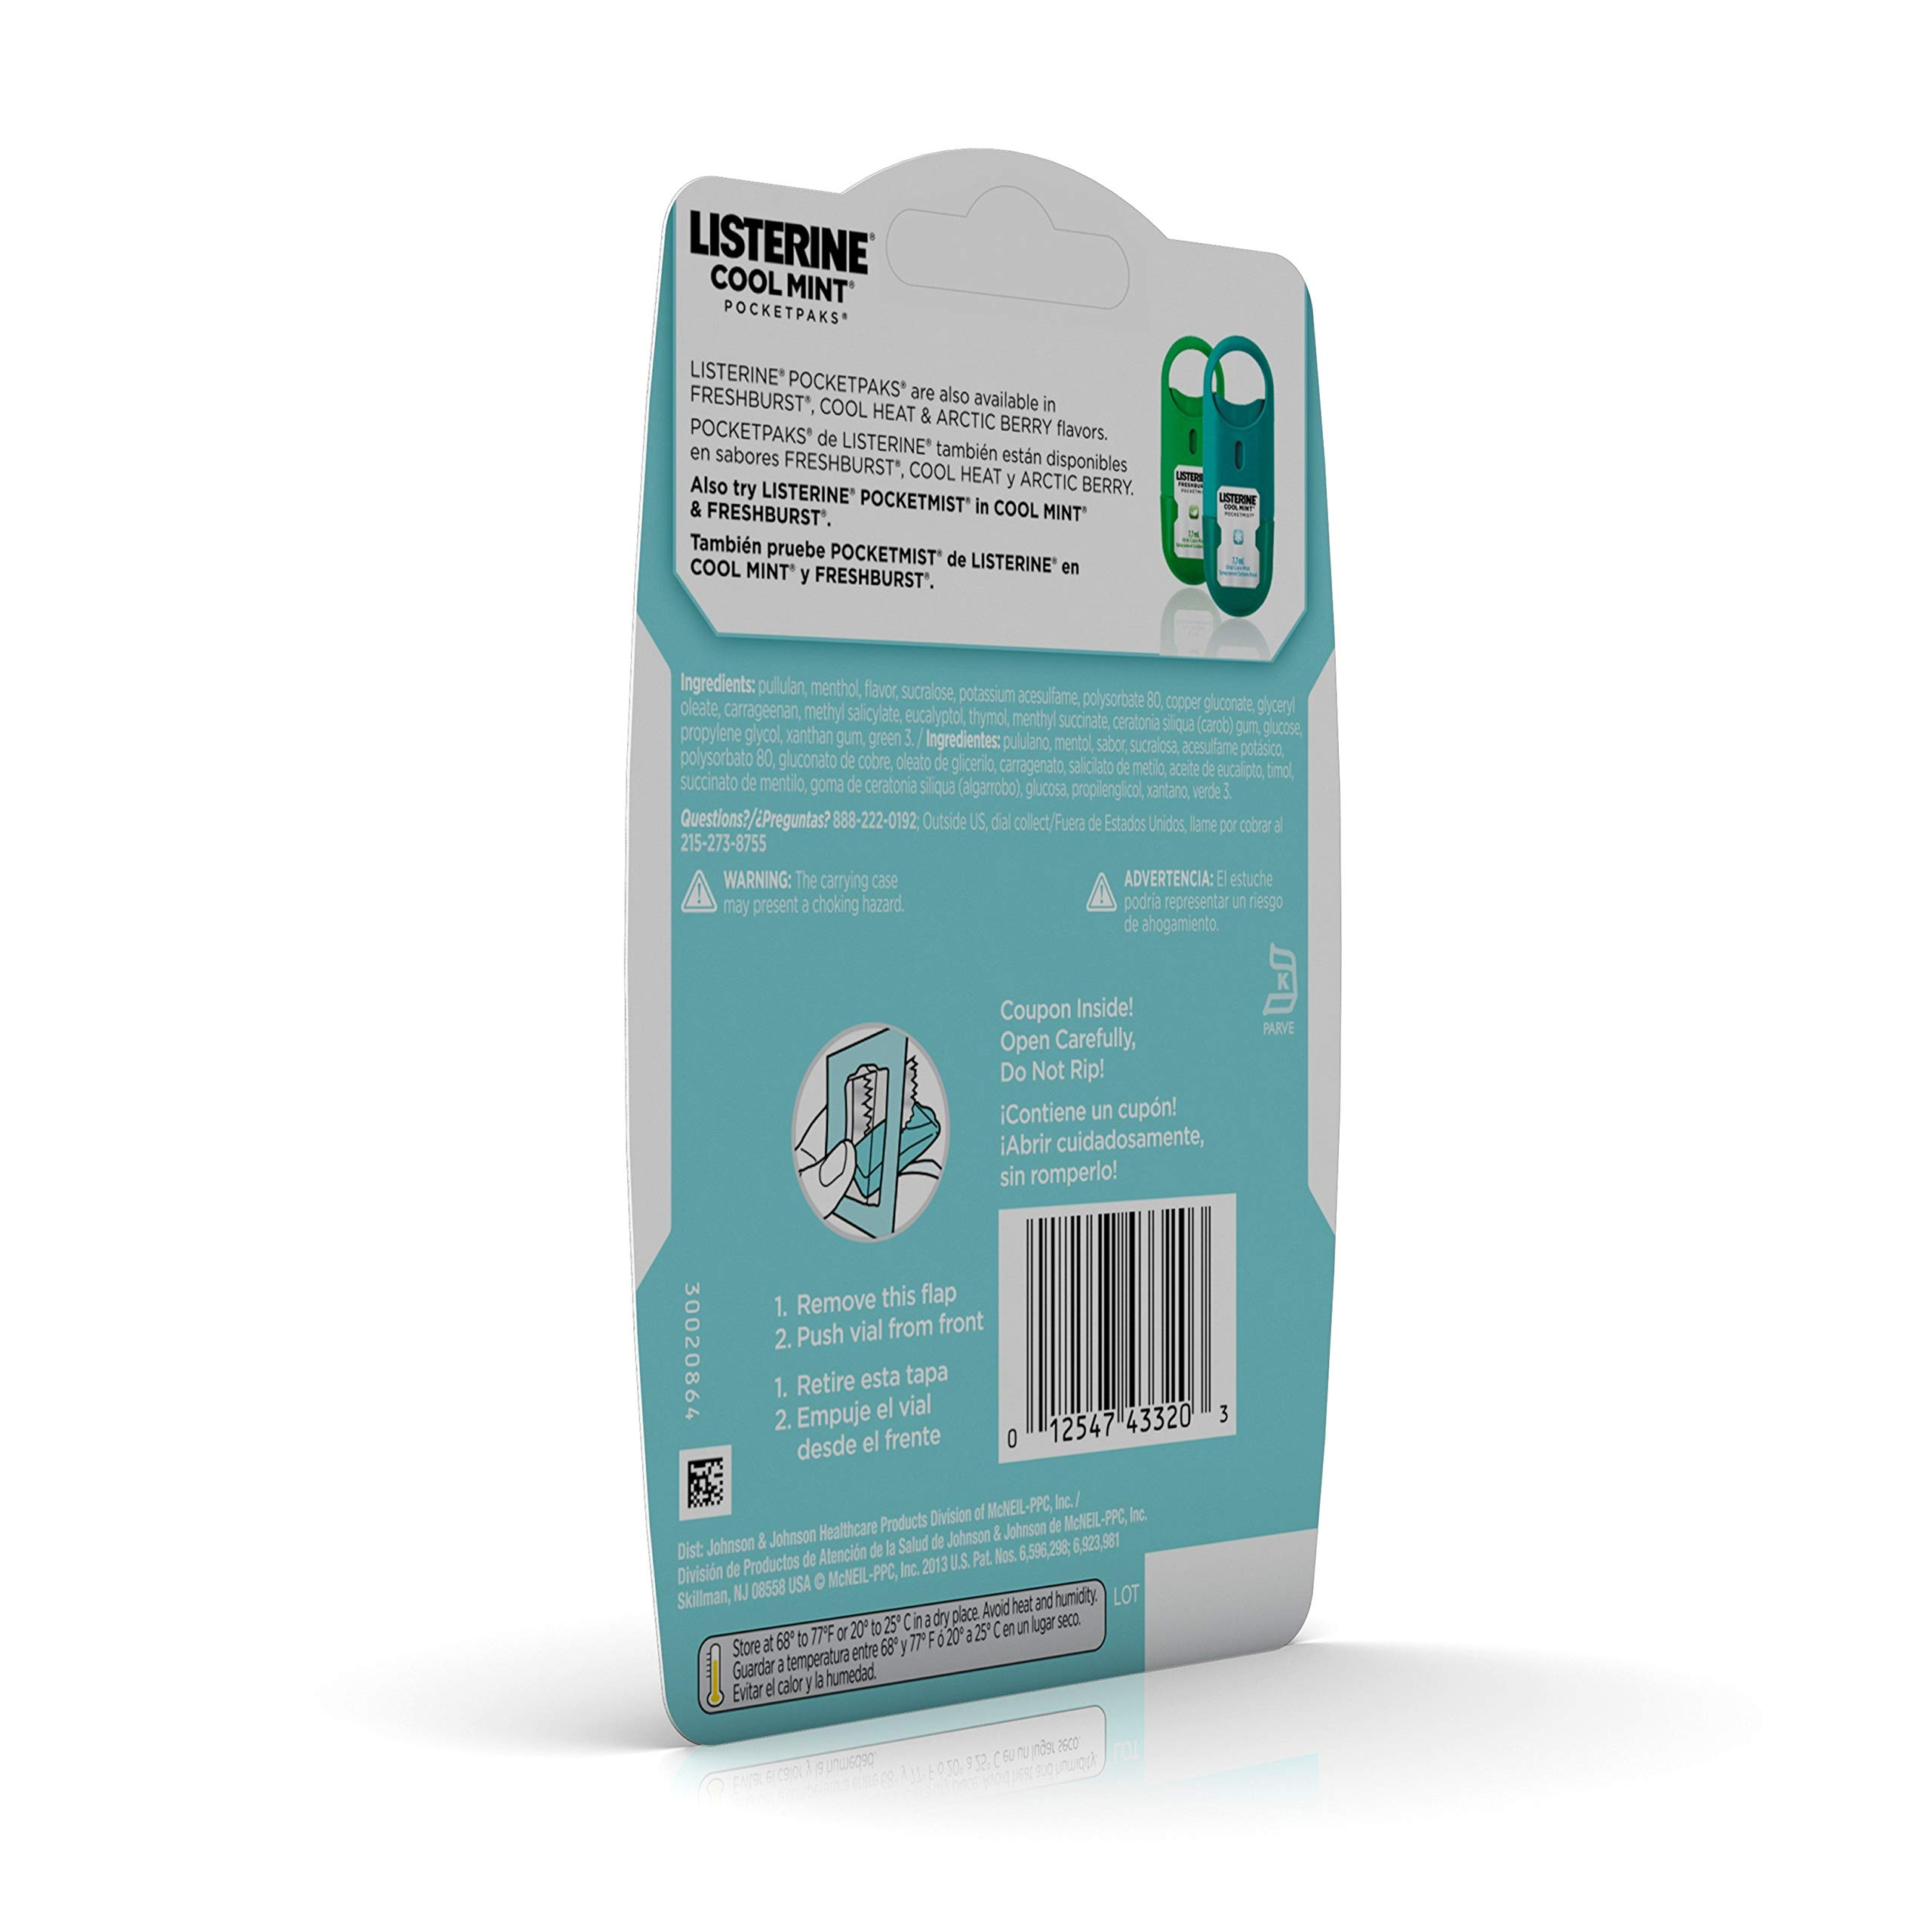 Listerine Cool Mint Pocketpaks Breath Strips Kills Bad Breath Germs, 24-Strip Pack, 3 Count (Pack Of 6) by Listerine (Image #7)